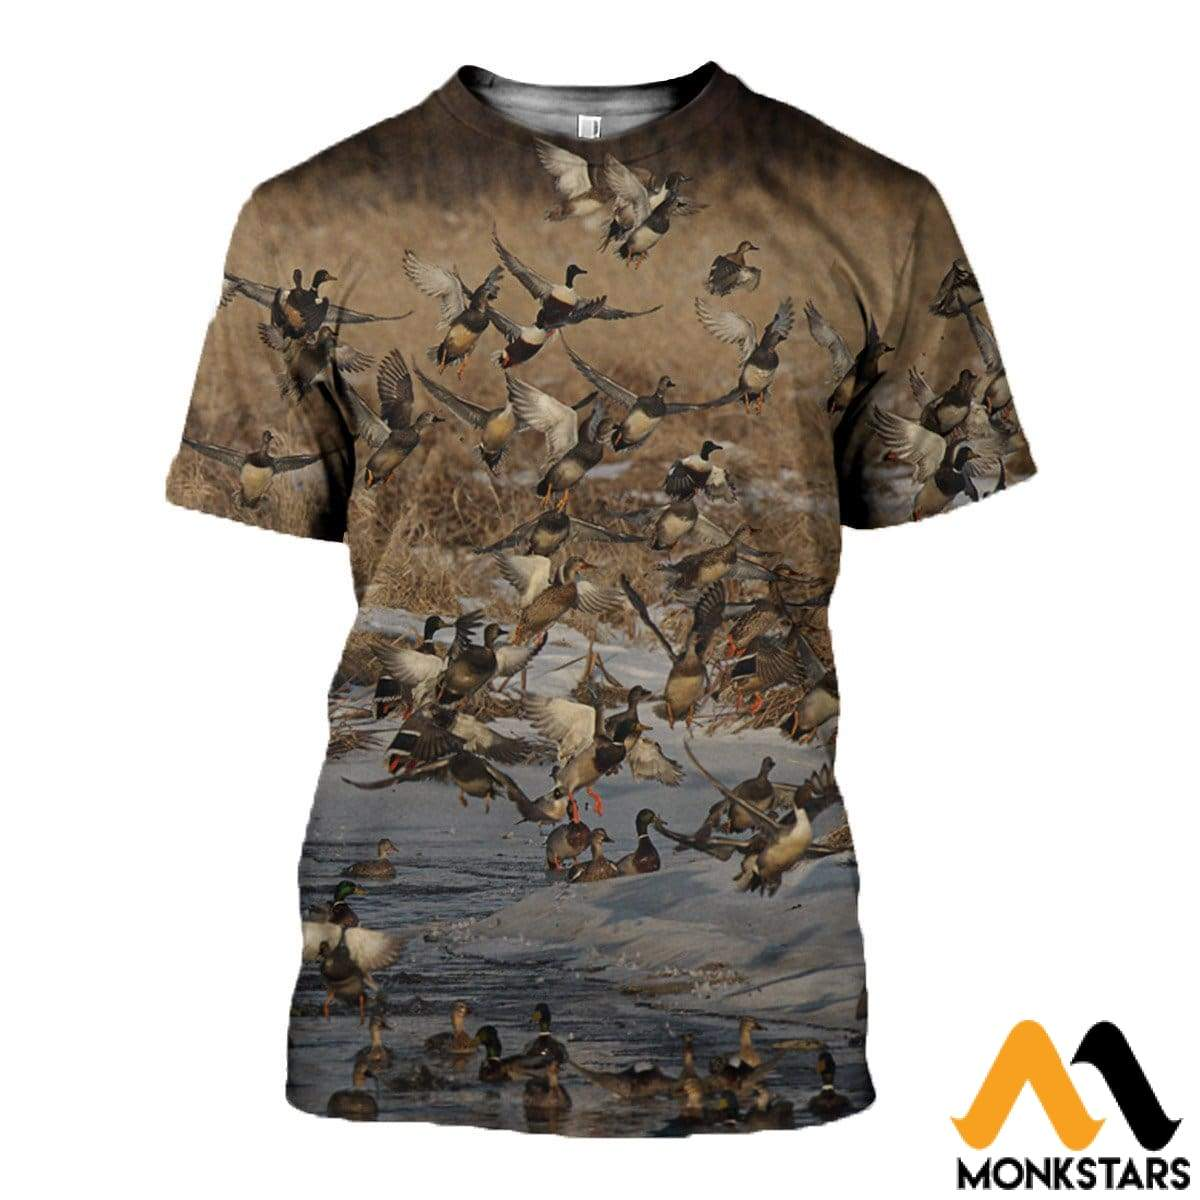 3D All Over Printed Duck Fly Shirts And Shorts T-Shirt / Xs Clothes